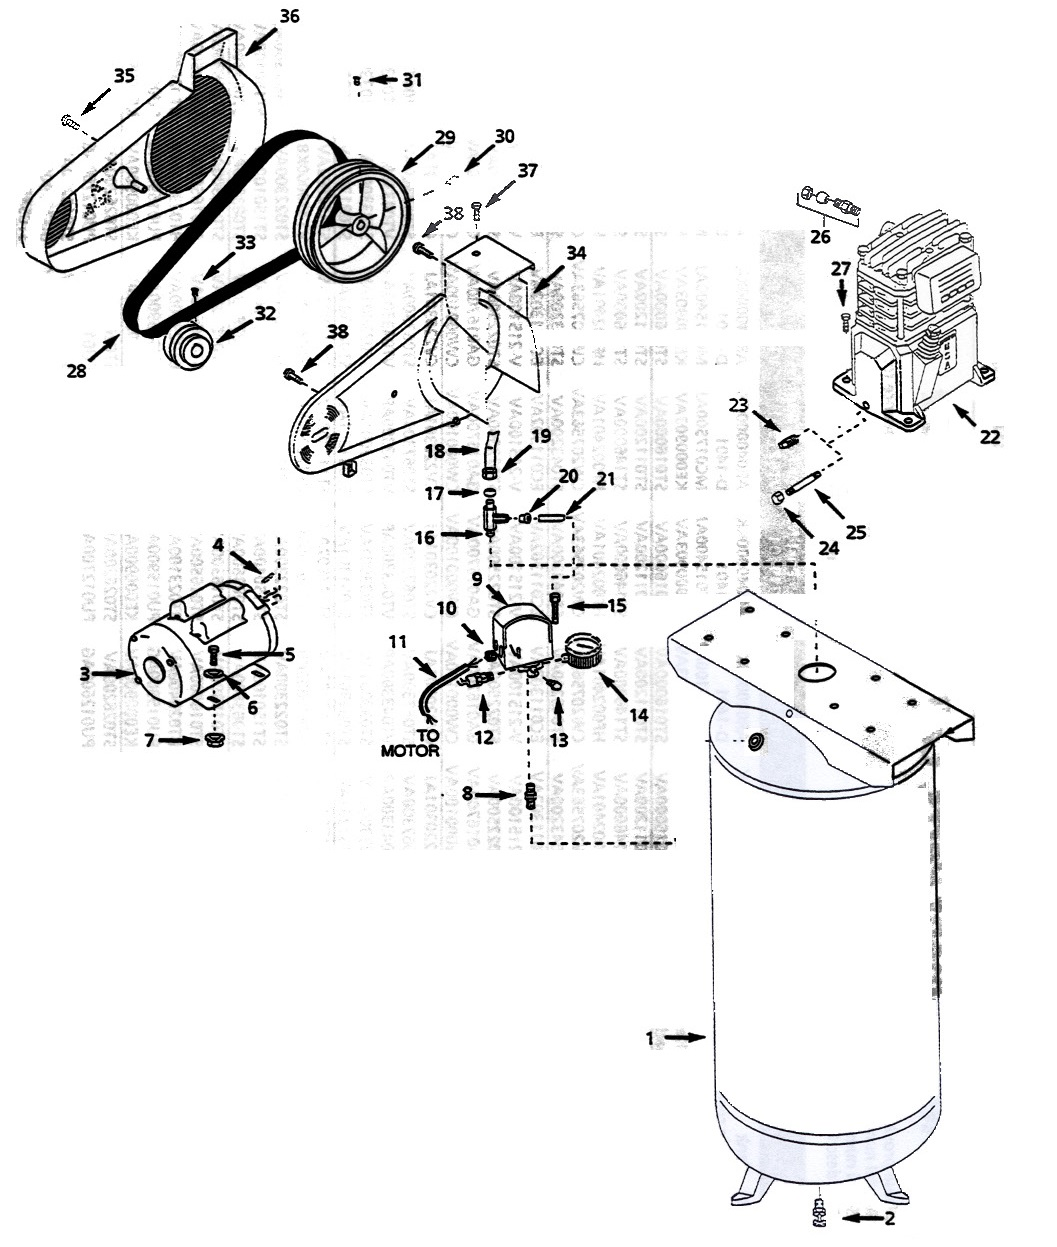 VT627501 - Air Compressor Parts schematic